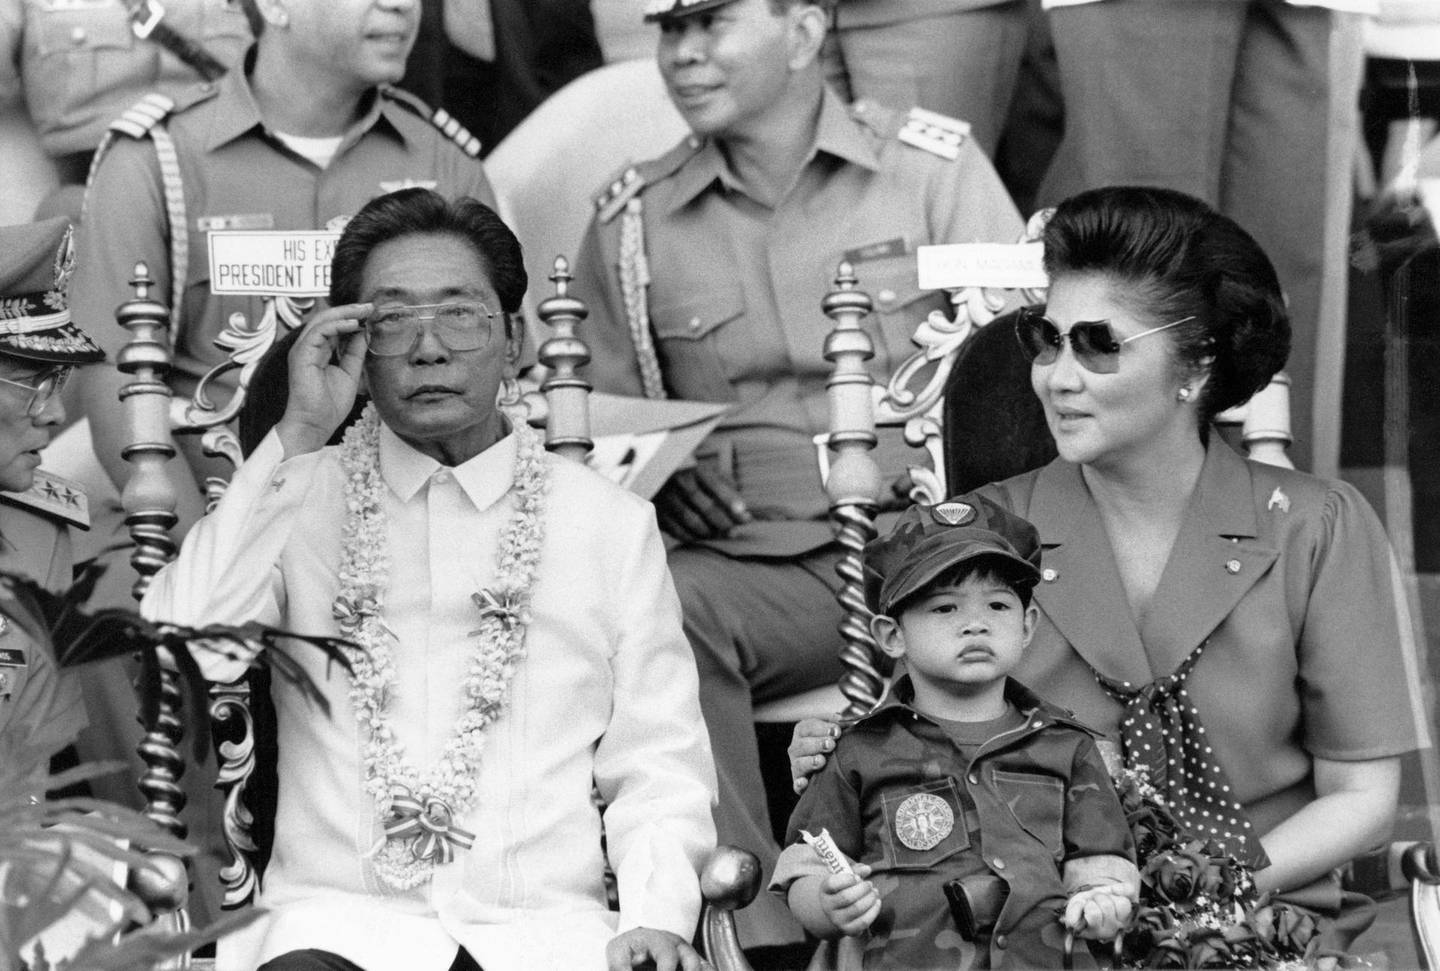 (FILES) This file photo taken on November 15, 1985 shows then Philippine president Ferdinand Marcos (L) and his wife Imelda (R) appearing before some 35,000 college students undergoing a two-year compulsory military training in Manila. The Philippine government has lost a decades-old legal effort to seize a multi-million-dollar chunk of Ferdinand Marcos' estate, a special anti-graft court said October 25, 2019, scolding prosecutors for failing to produce admissible evidence. -   / AFP / Romeo GACAD